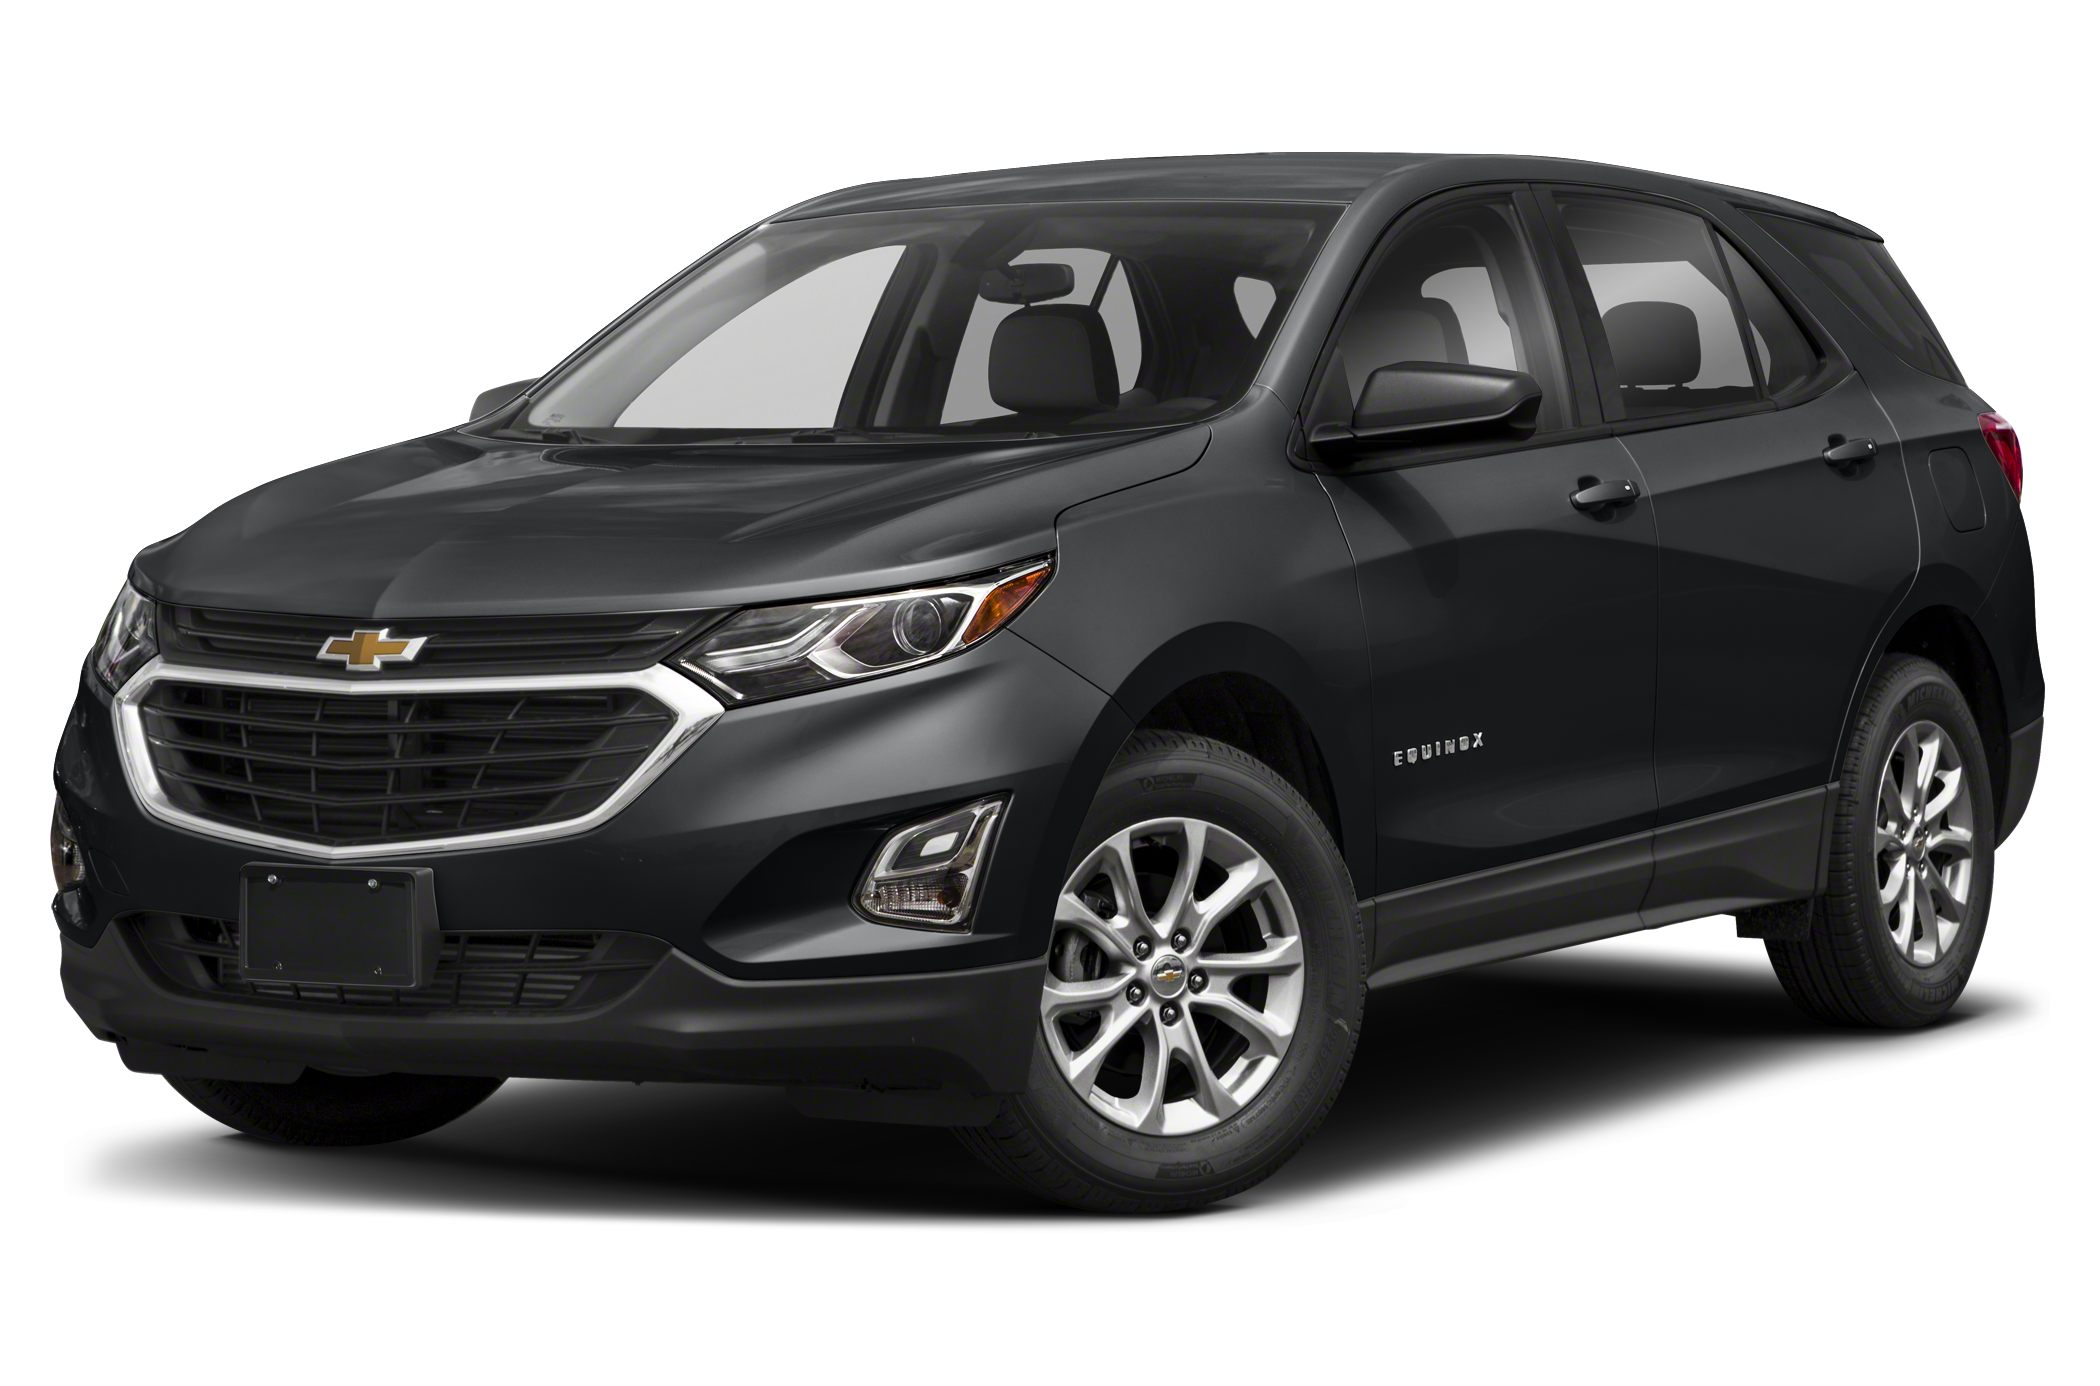 Mercedes Benz Lease >> See 2019 Chevrolet Equinox Color Options - CarsDirect